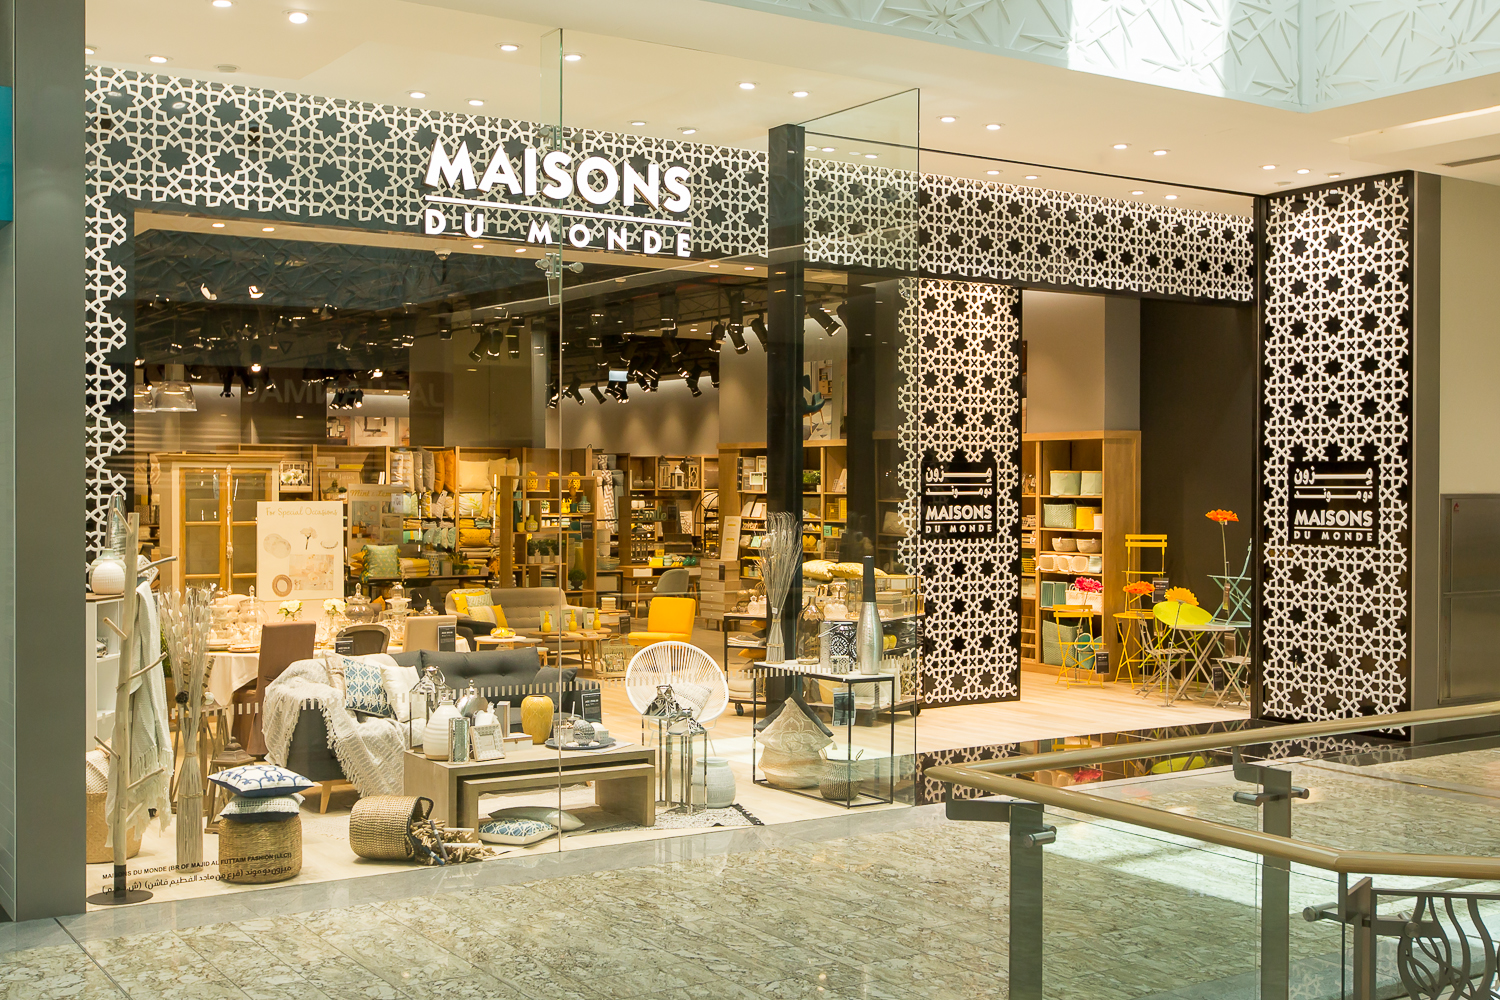 Maison assouline comes to the dubai mall future of retail